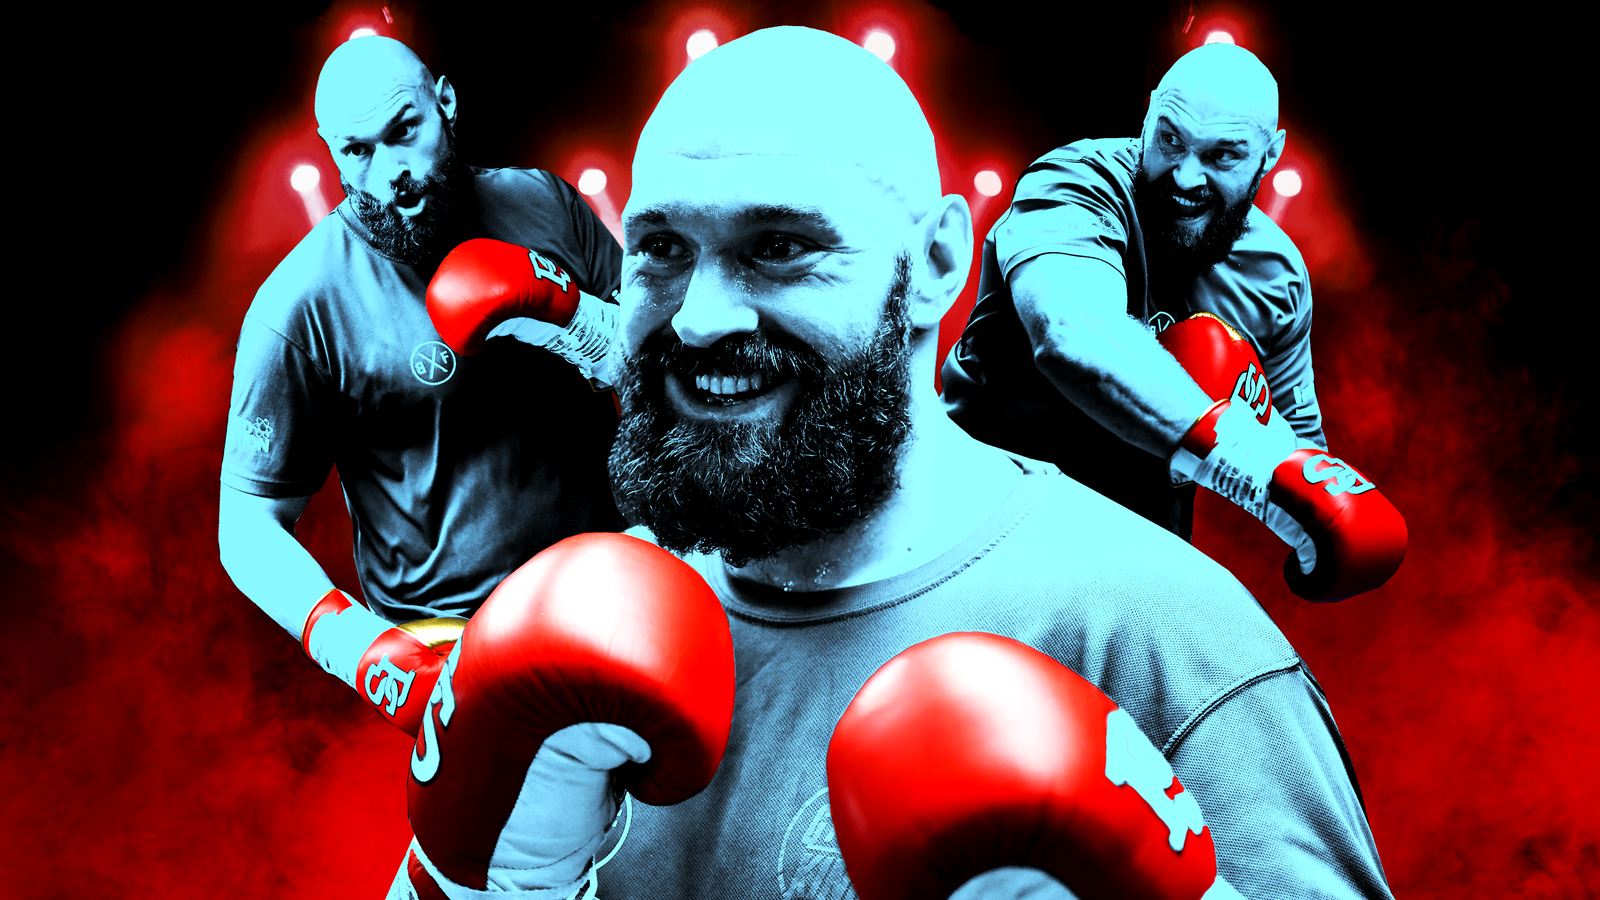 2383aa7f02d94 Tyson Fury, Set To Take On Deontay Wilder, Is Boxing's Most ...